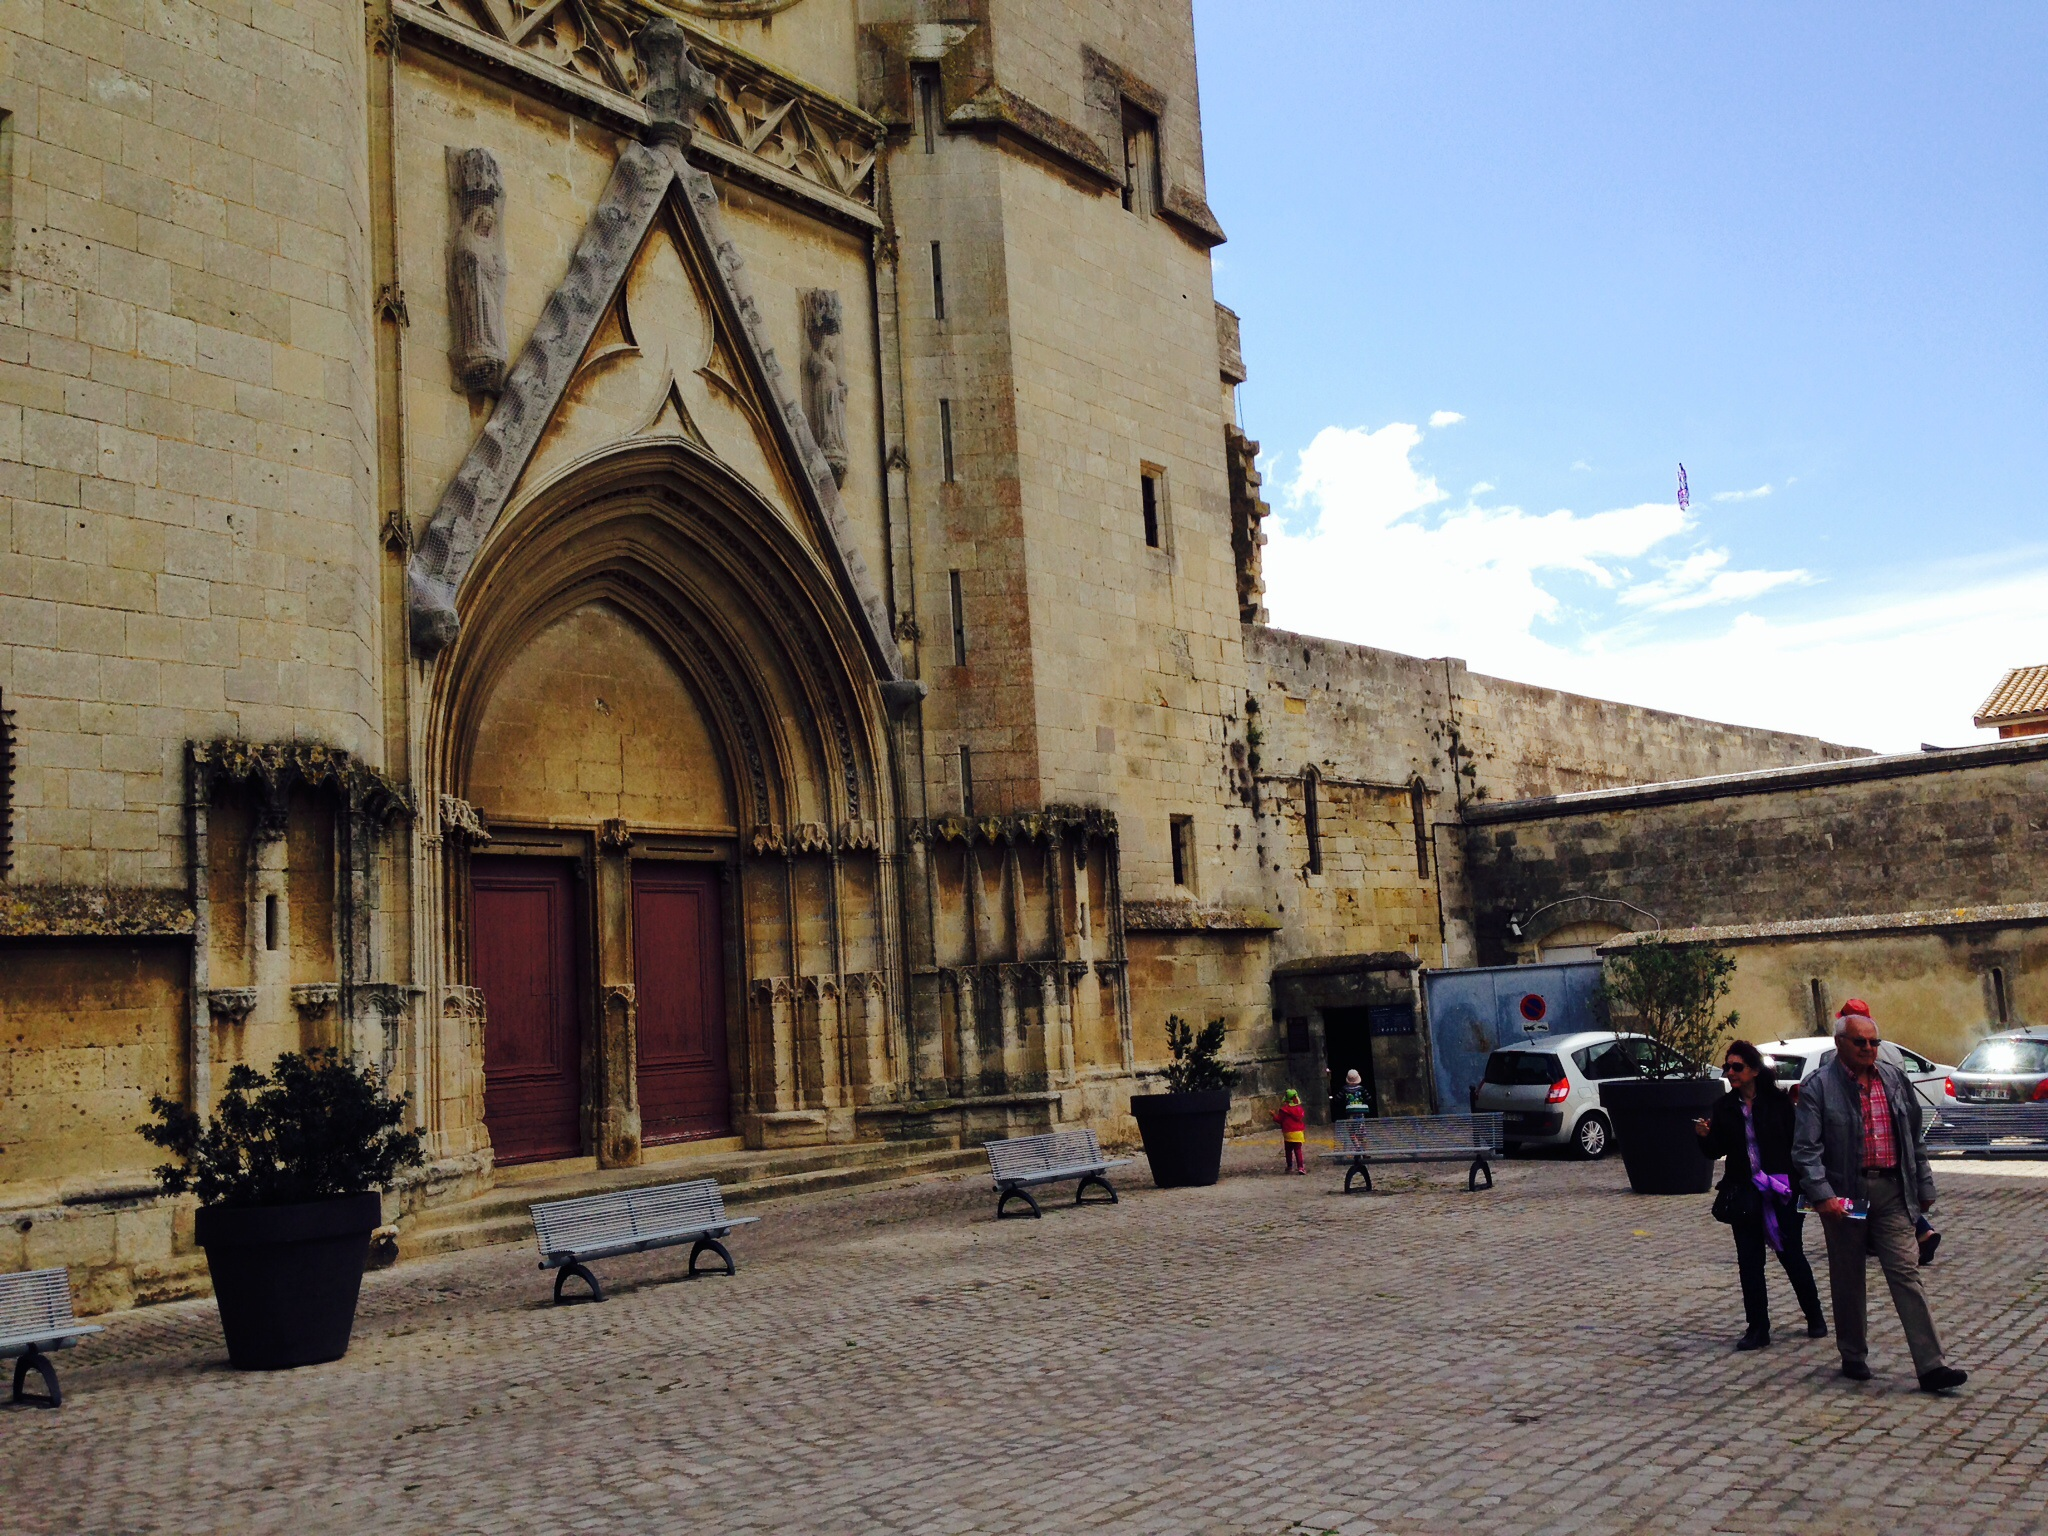 In And Out Beziers beziers cathedral | wilke blog